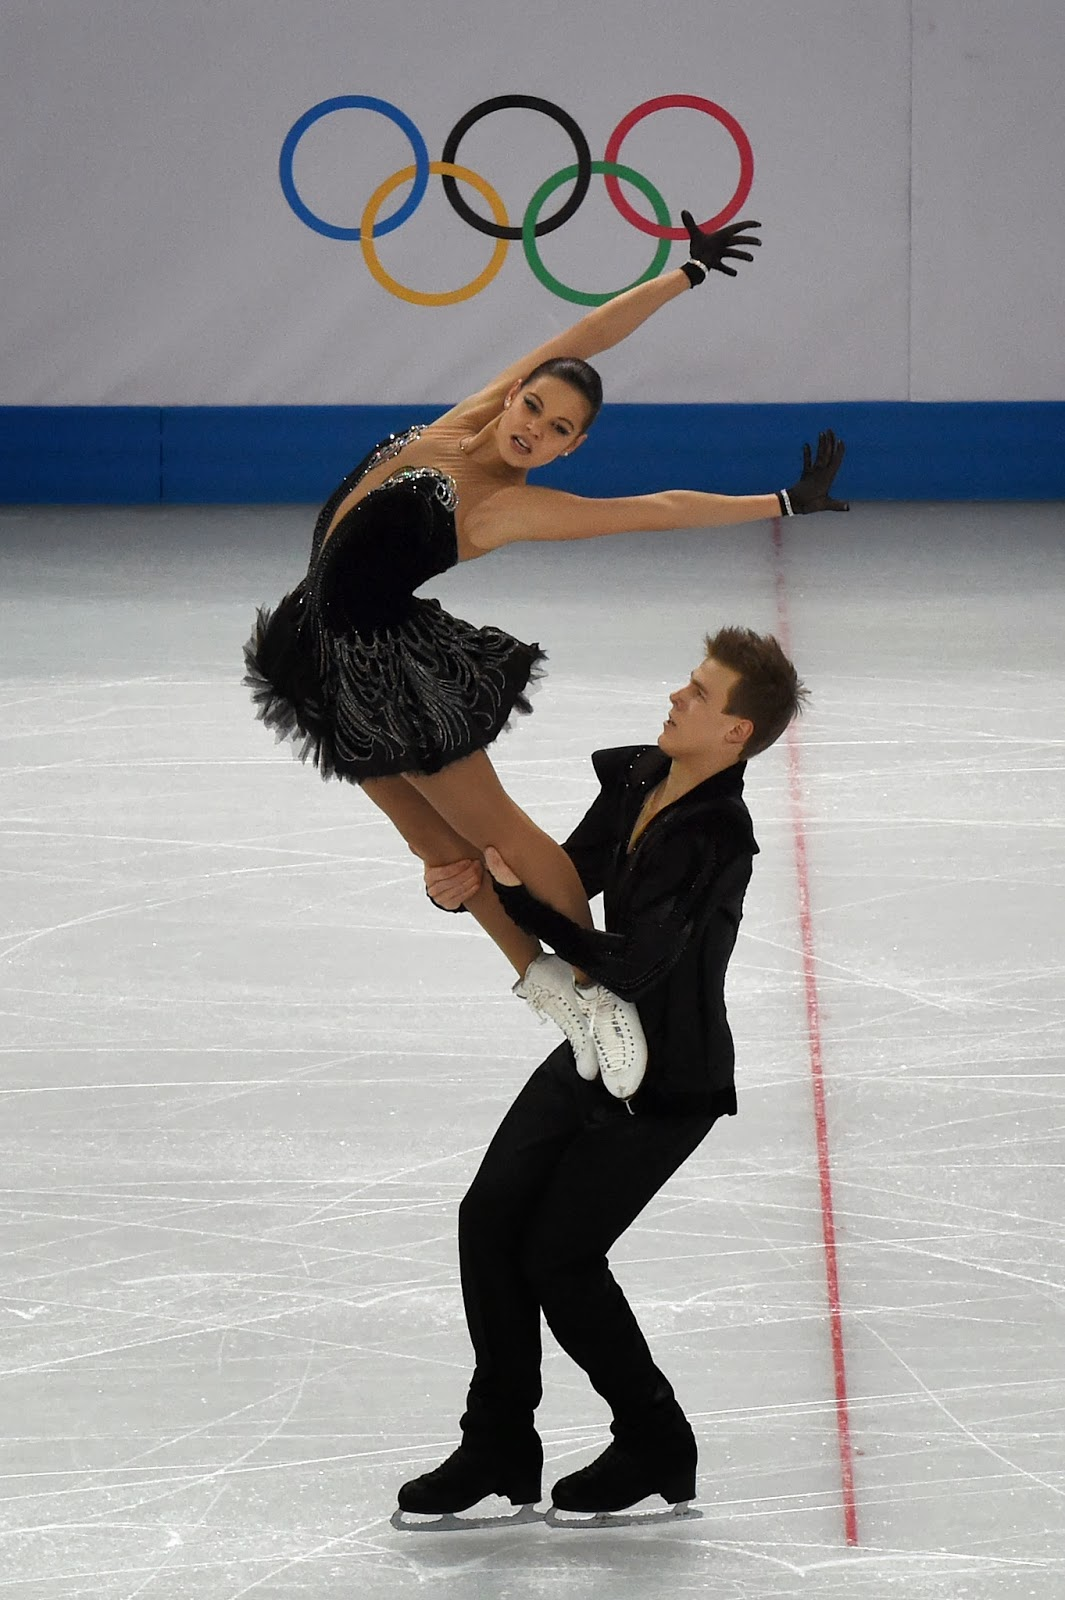 Bronze, Canada, Couple, Figure Skating, Gold, Match, Medal, Olympic, Pictures, Podium, Russia, Silver, Skaters, Skating, Sochi, Sochi Winter Olympics, Sports, Team, USA, Italy,